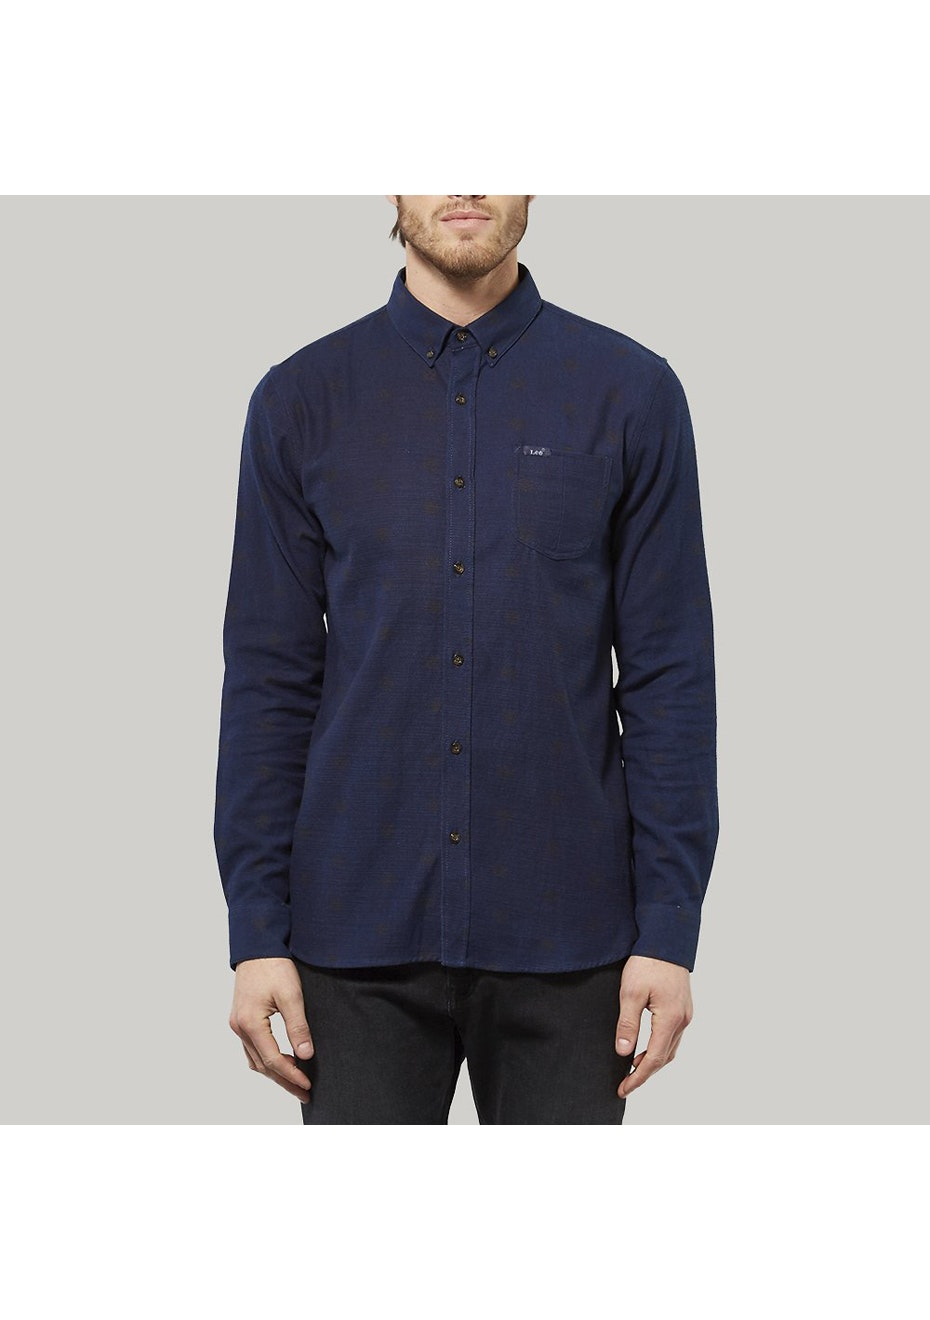 Lee - Mens - Straight Line Ls Shirt Origami Blue